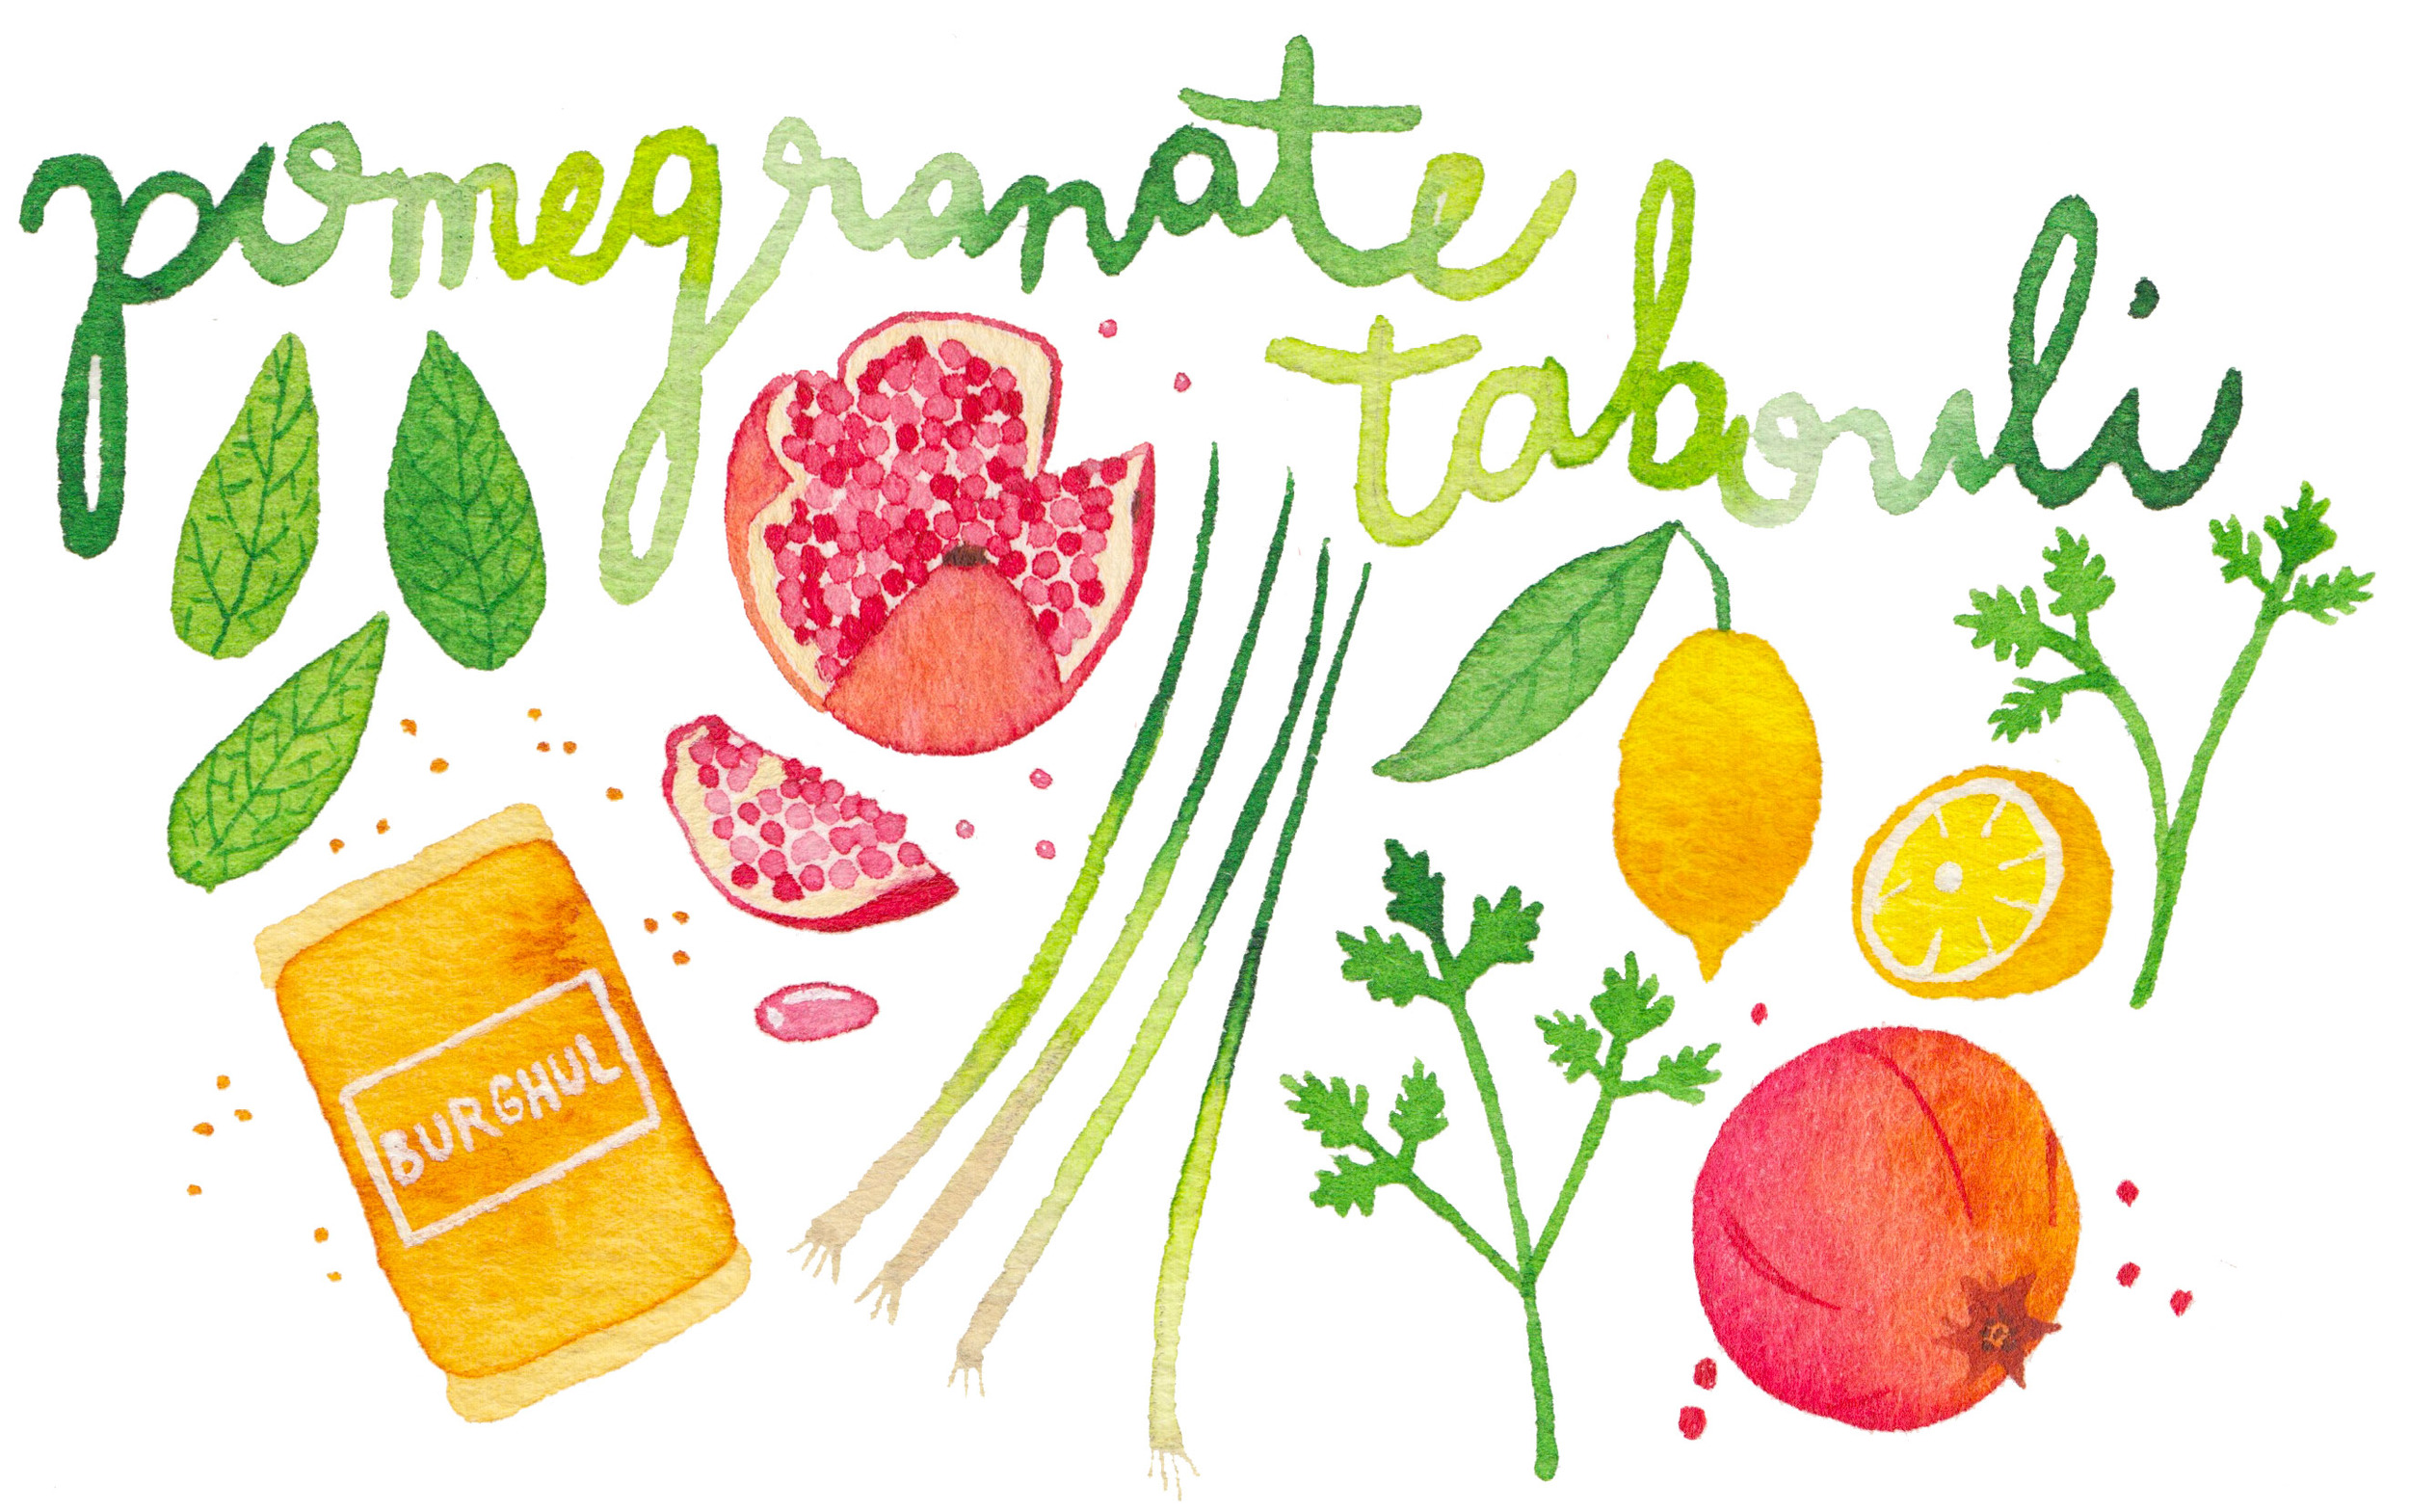 miss yasemin watercolour painting of pomegranate tabouli ingredients